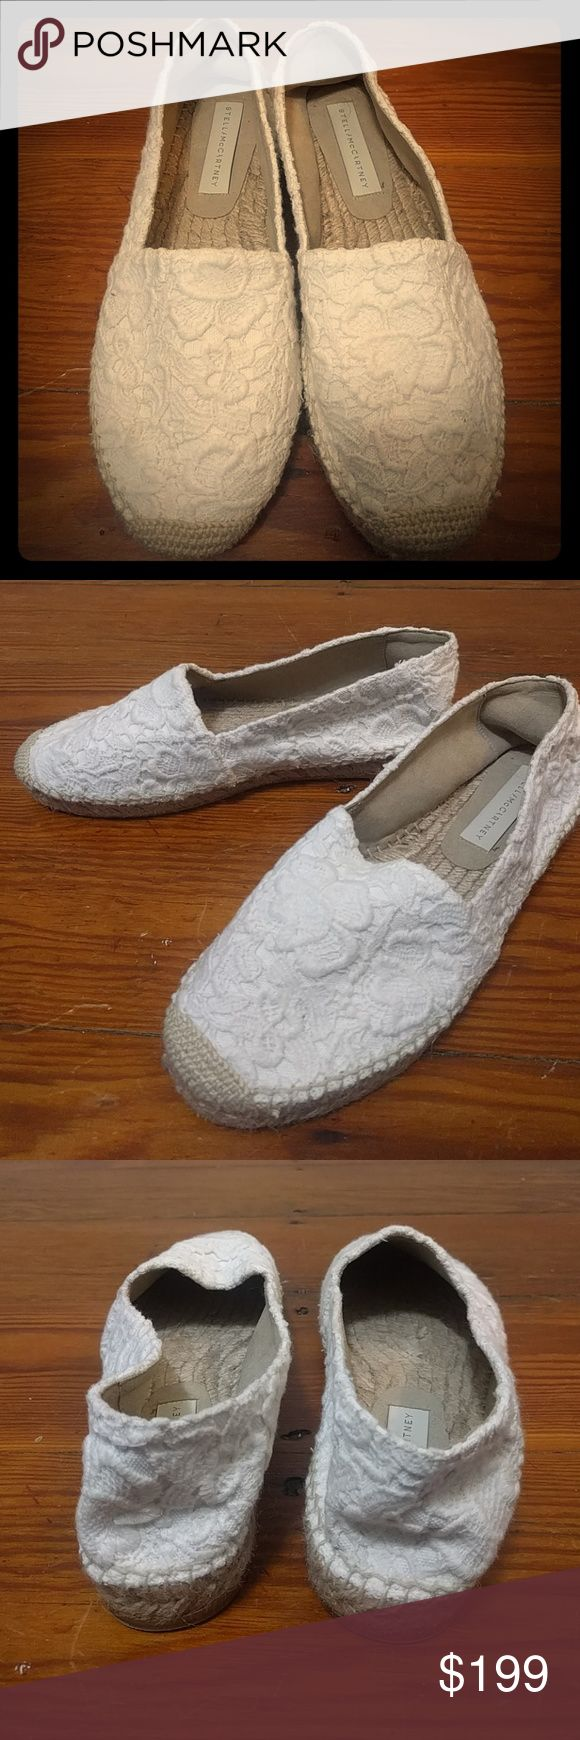 Barely worn white lace Stella MacCartney flats Perfect wedding flats. Woven on the bottom and thick lace on top. Labeled as suitable for vegetarians. Stella McCartney Shoes Espadrilles